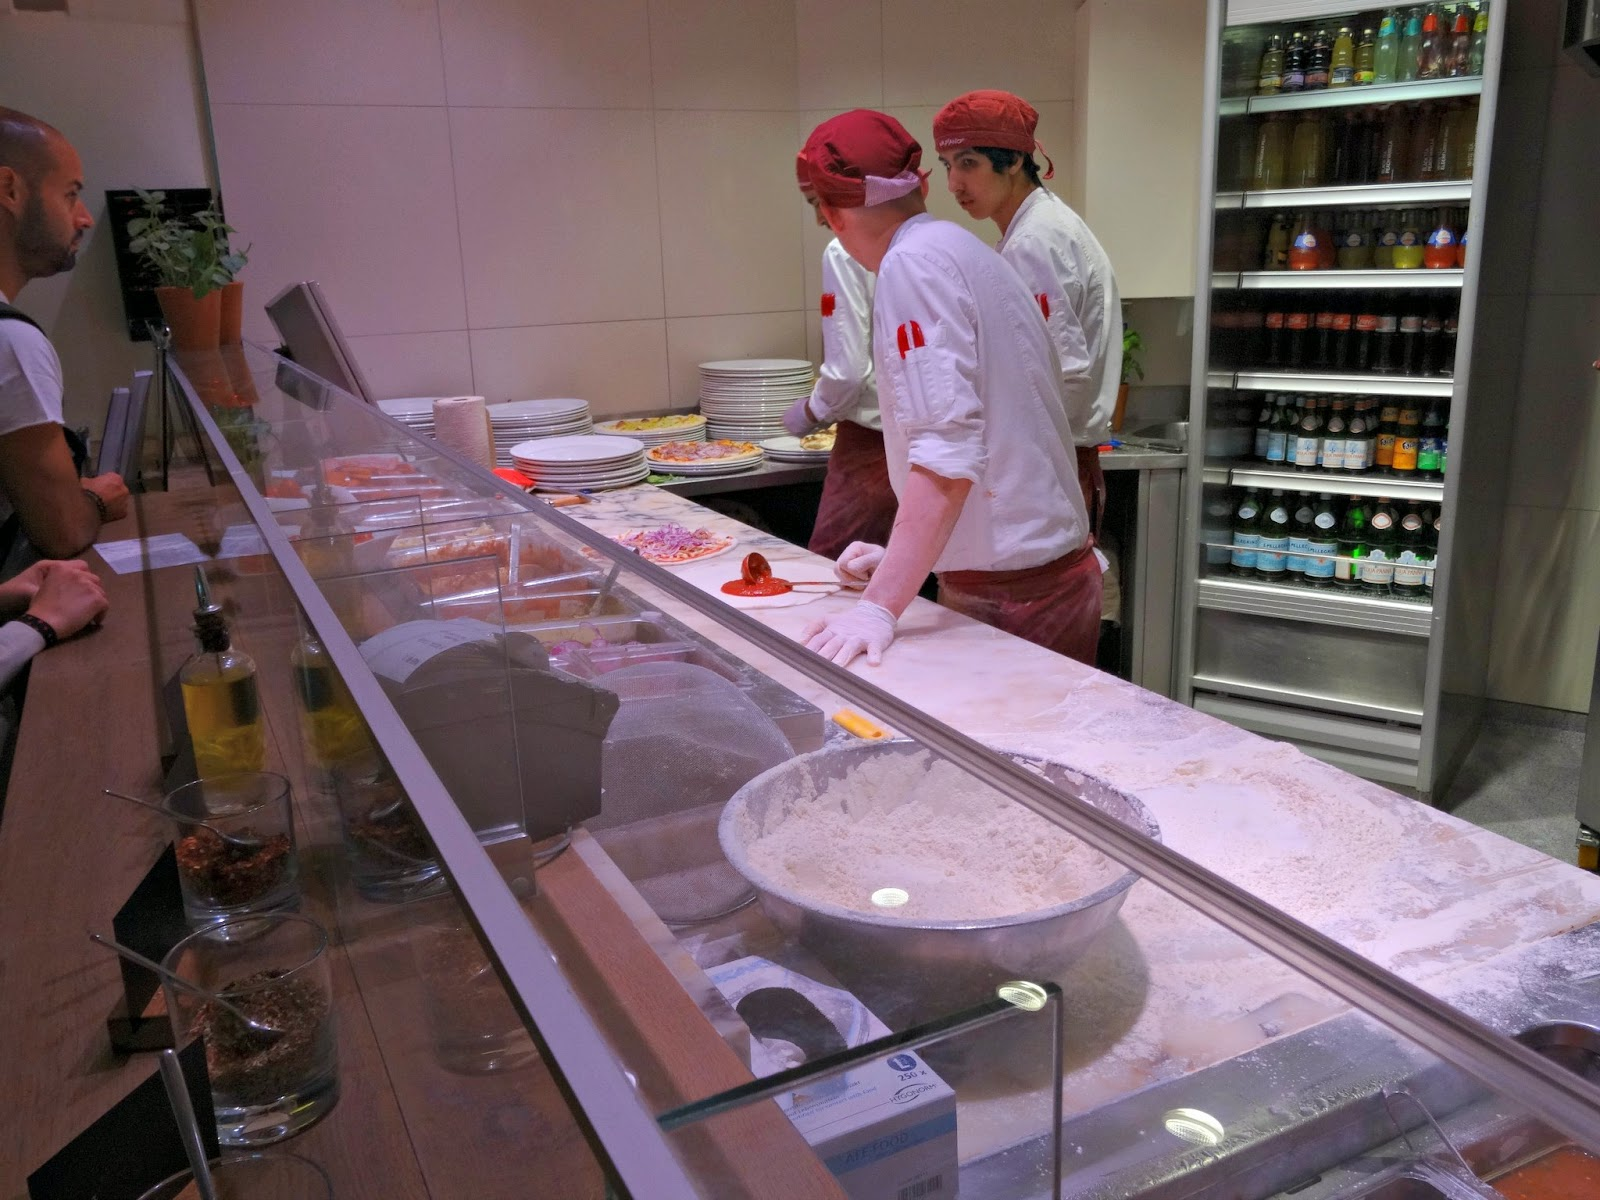 Vapiano chefs cooking fresh meals